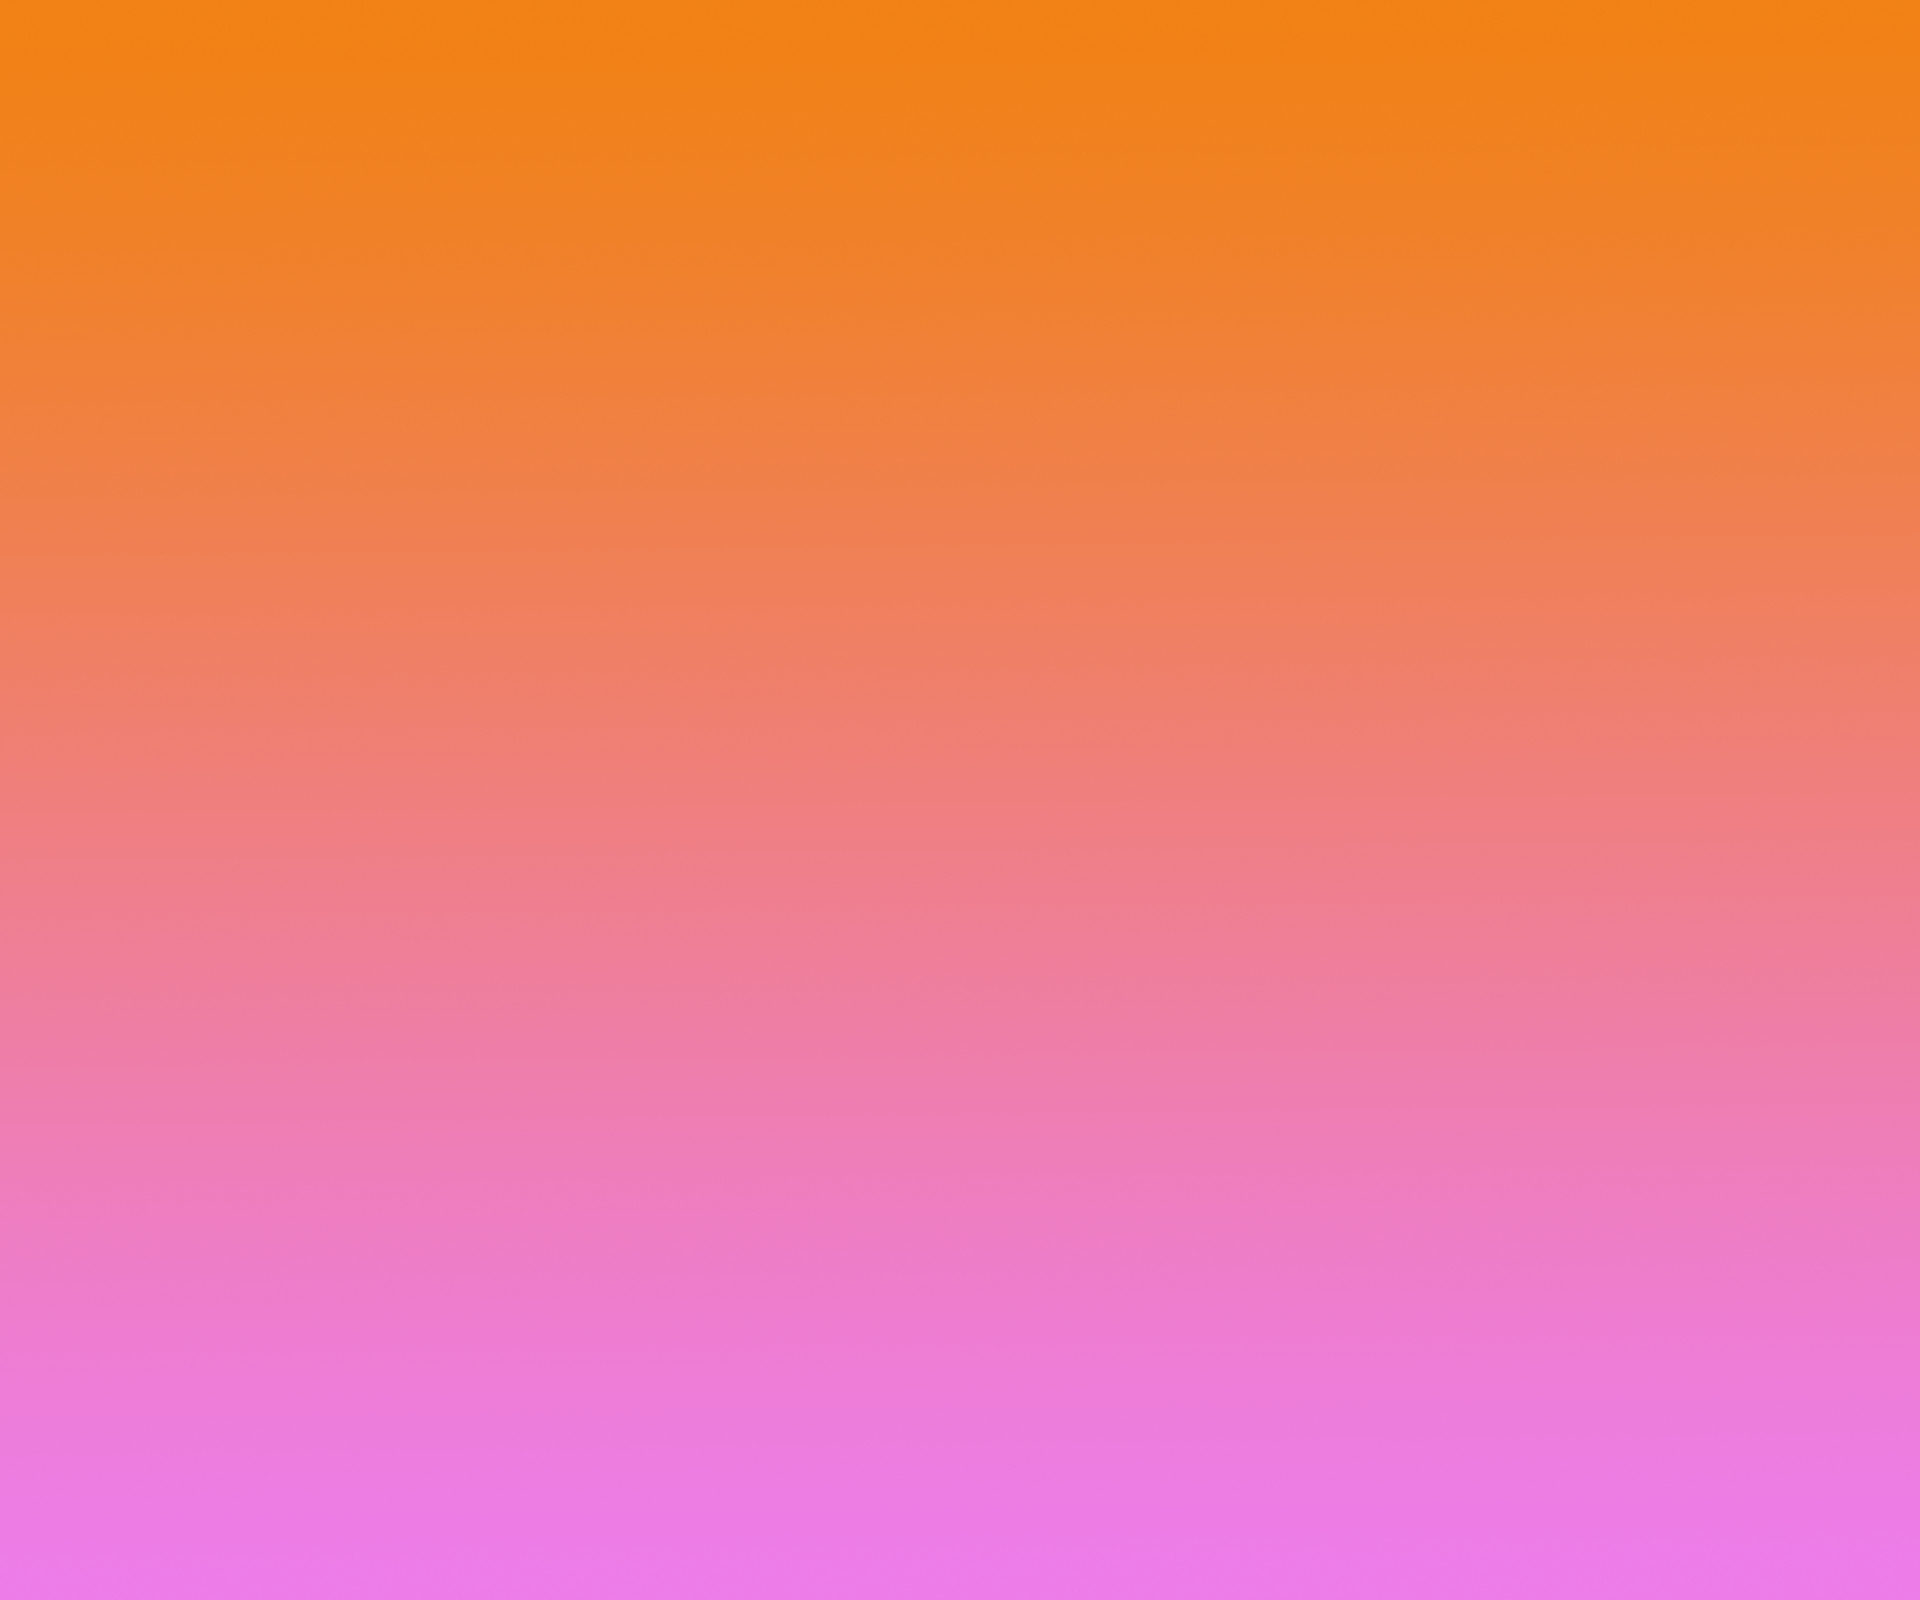 1920x1600 Orange-Pink Gradient by Halaxega Orange-Pink Gradient by Halaxega